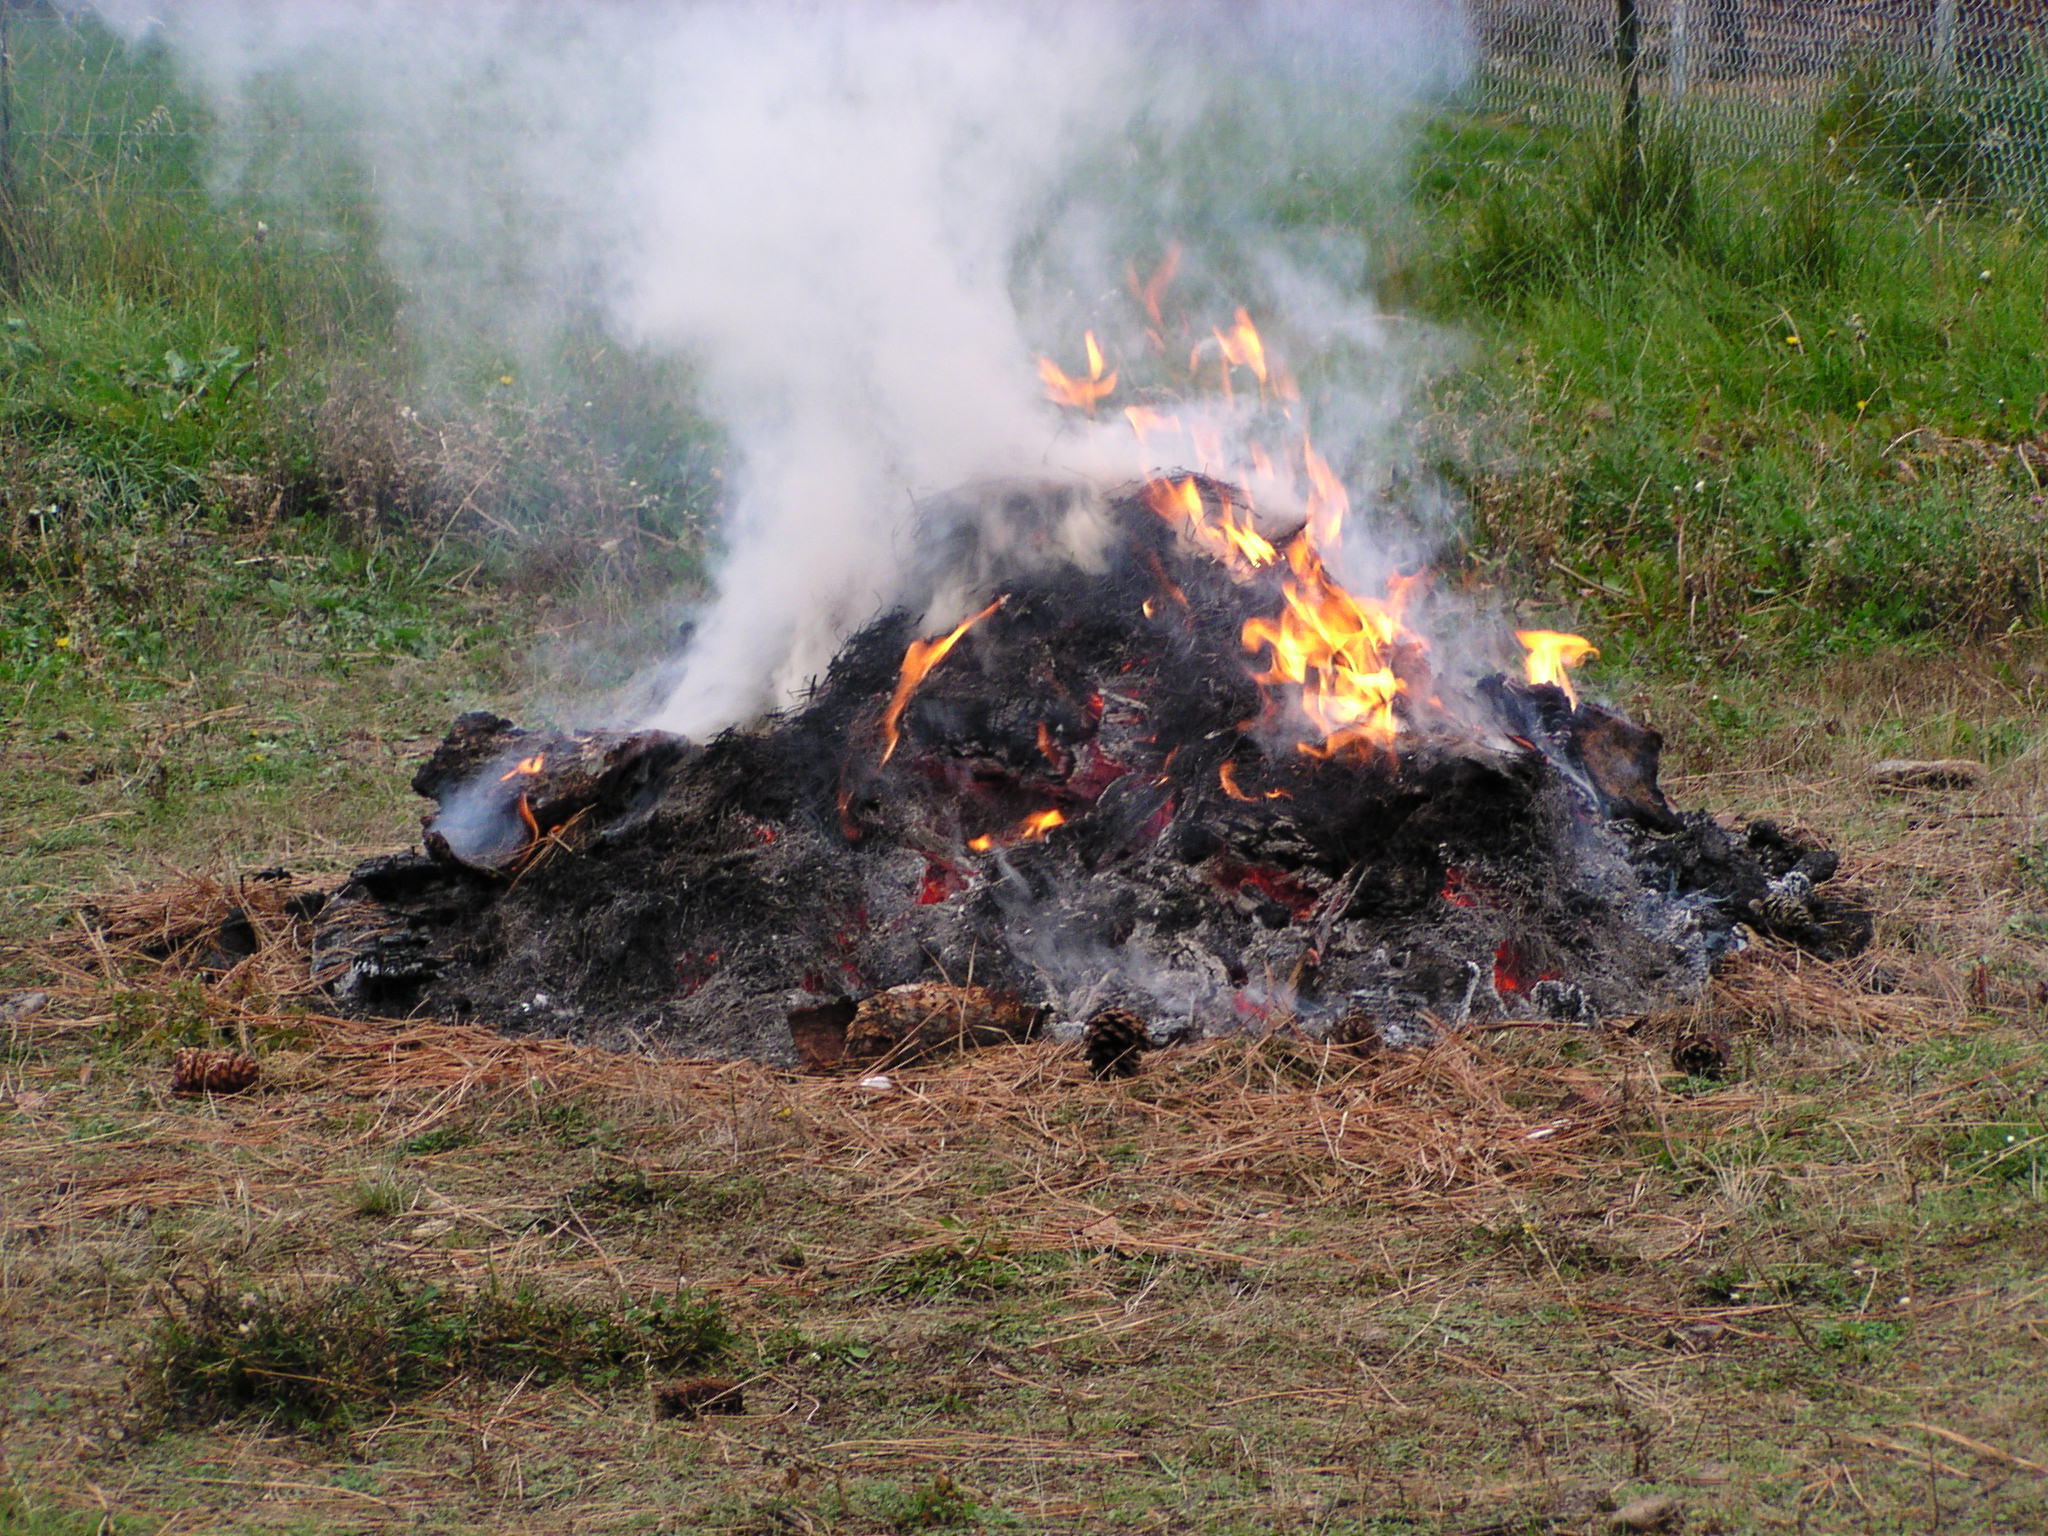 Burn Ban Approved in Mt. Vernon | WJPF News Radio